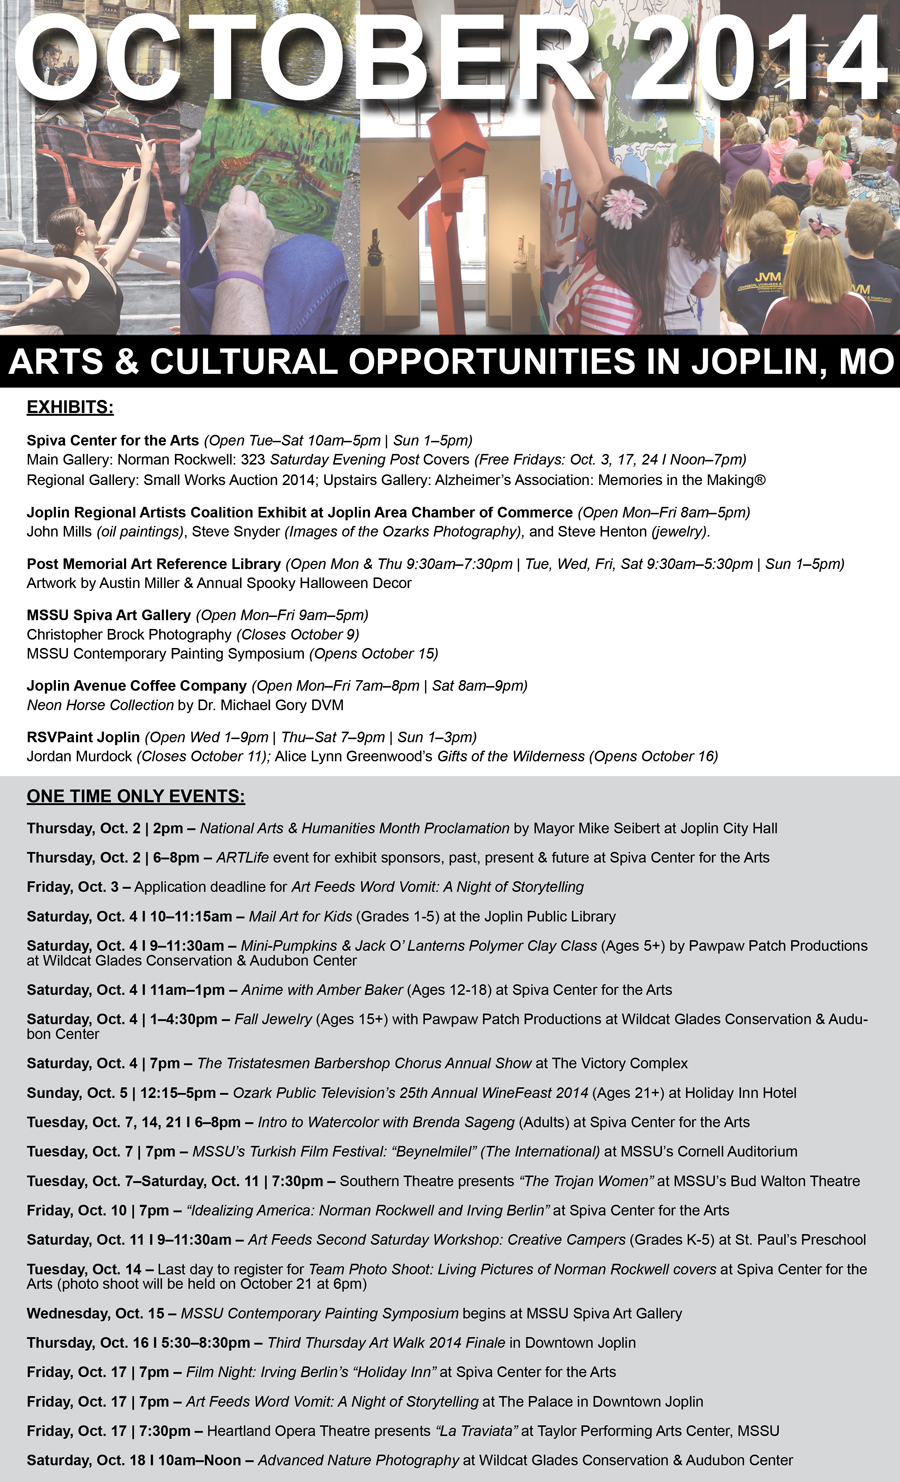 National Arts & Humanities Month List of Activities in Joplin, MO